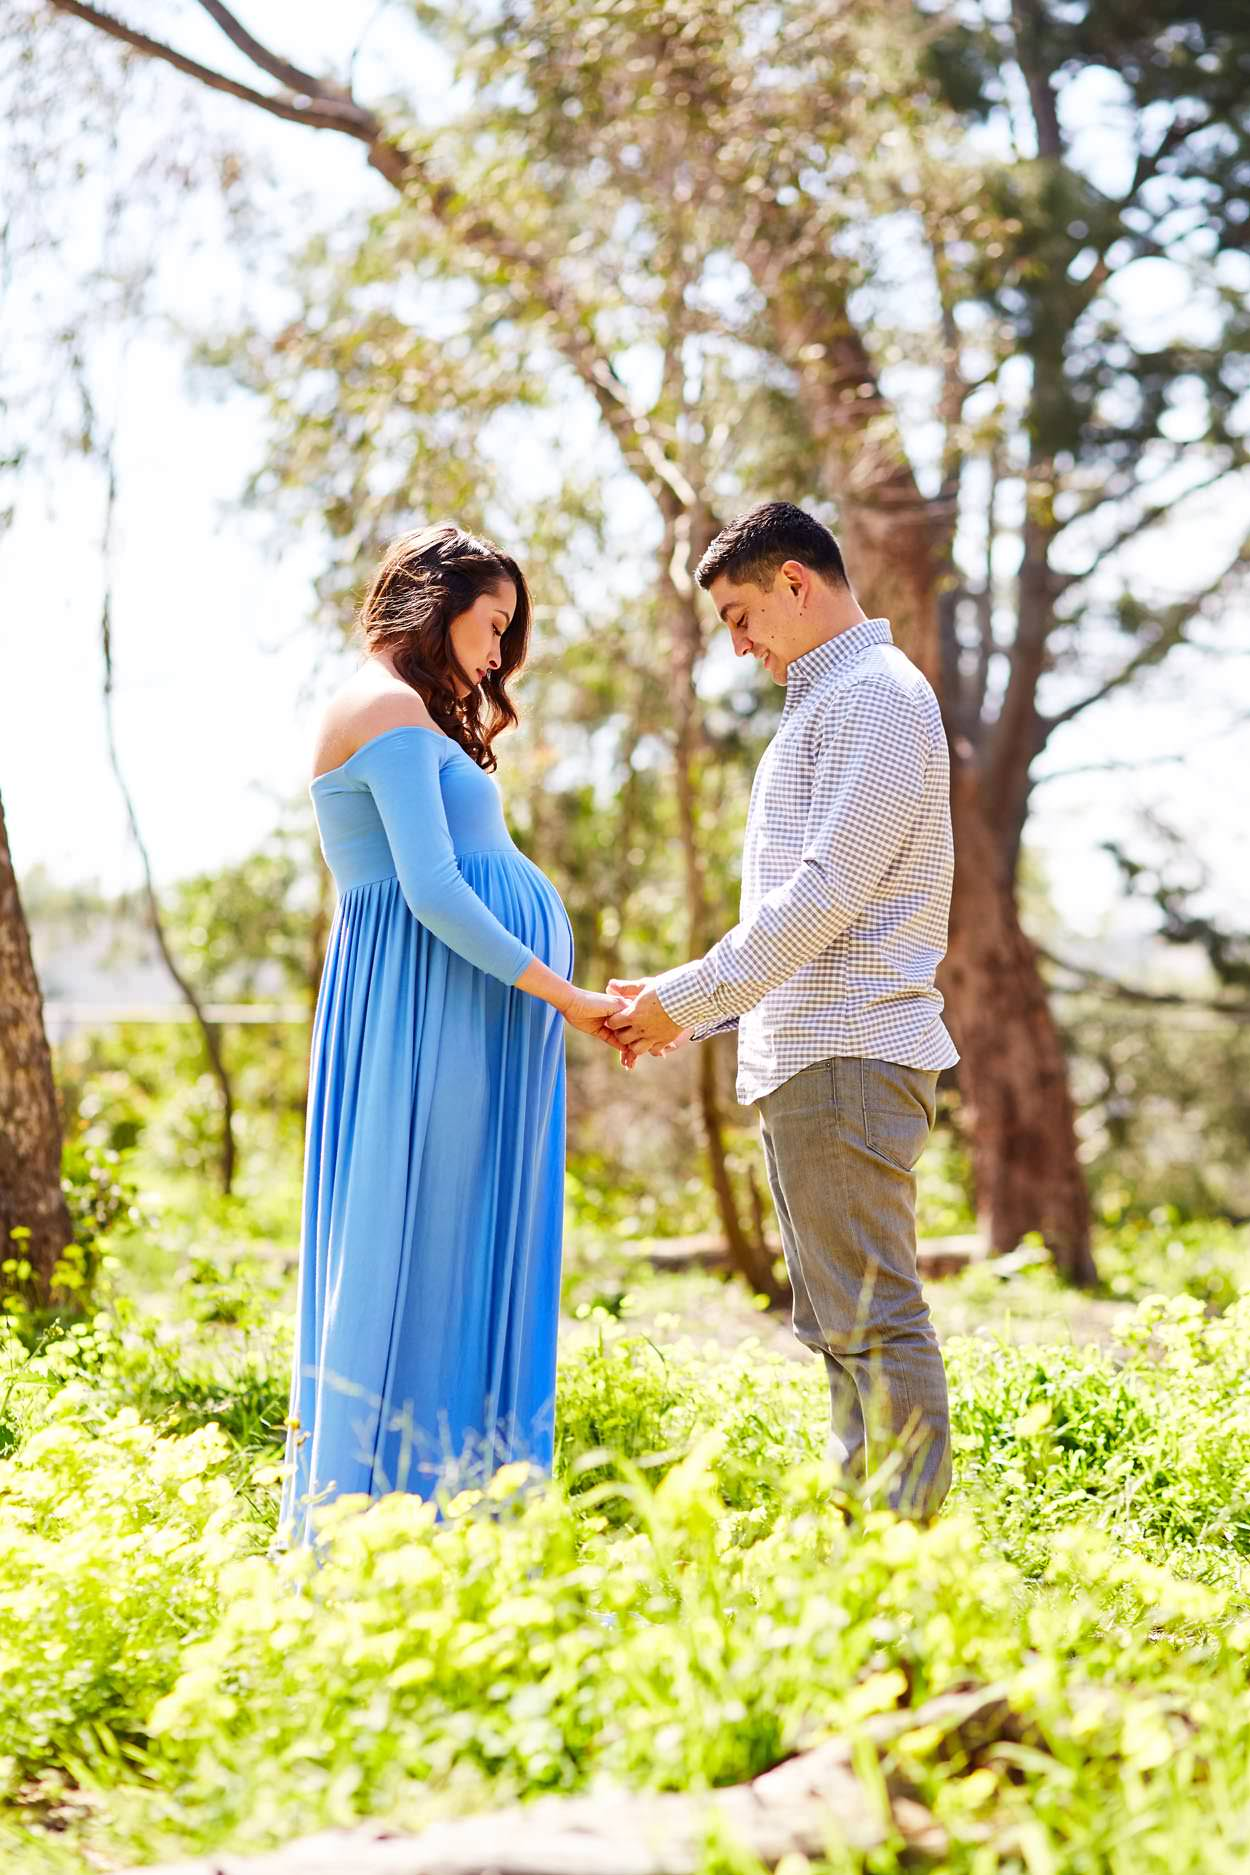 Wilderness Park Maternity Photography images from South Bay family and wedding portrait photography business Daniel Doty Photography.